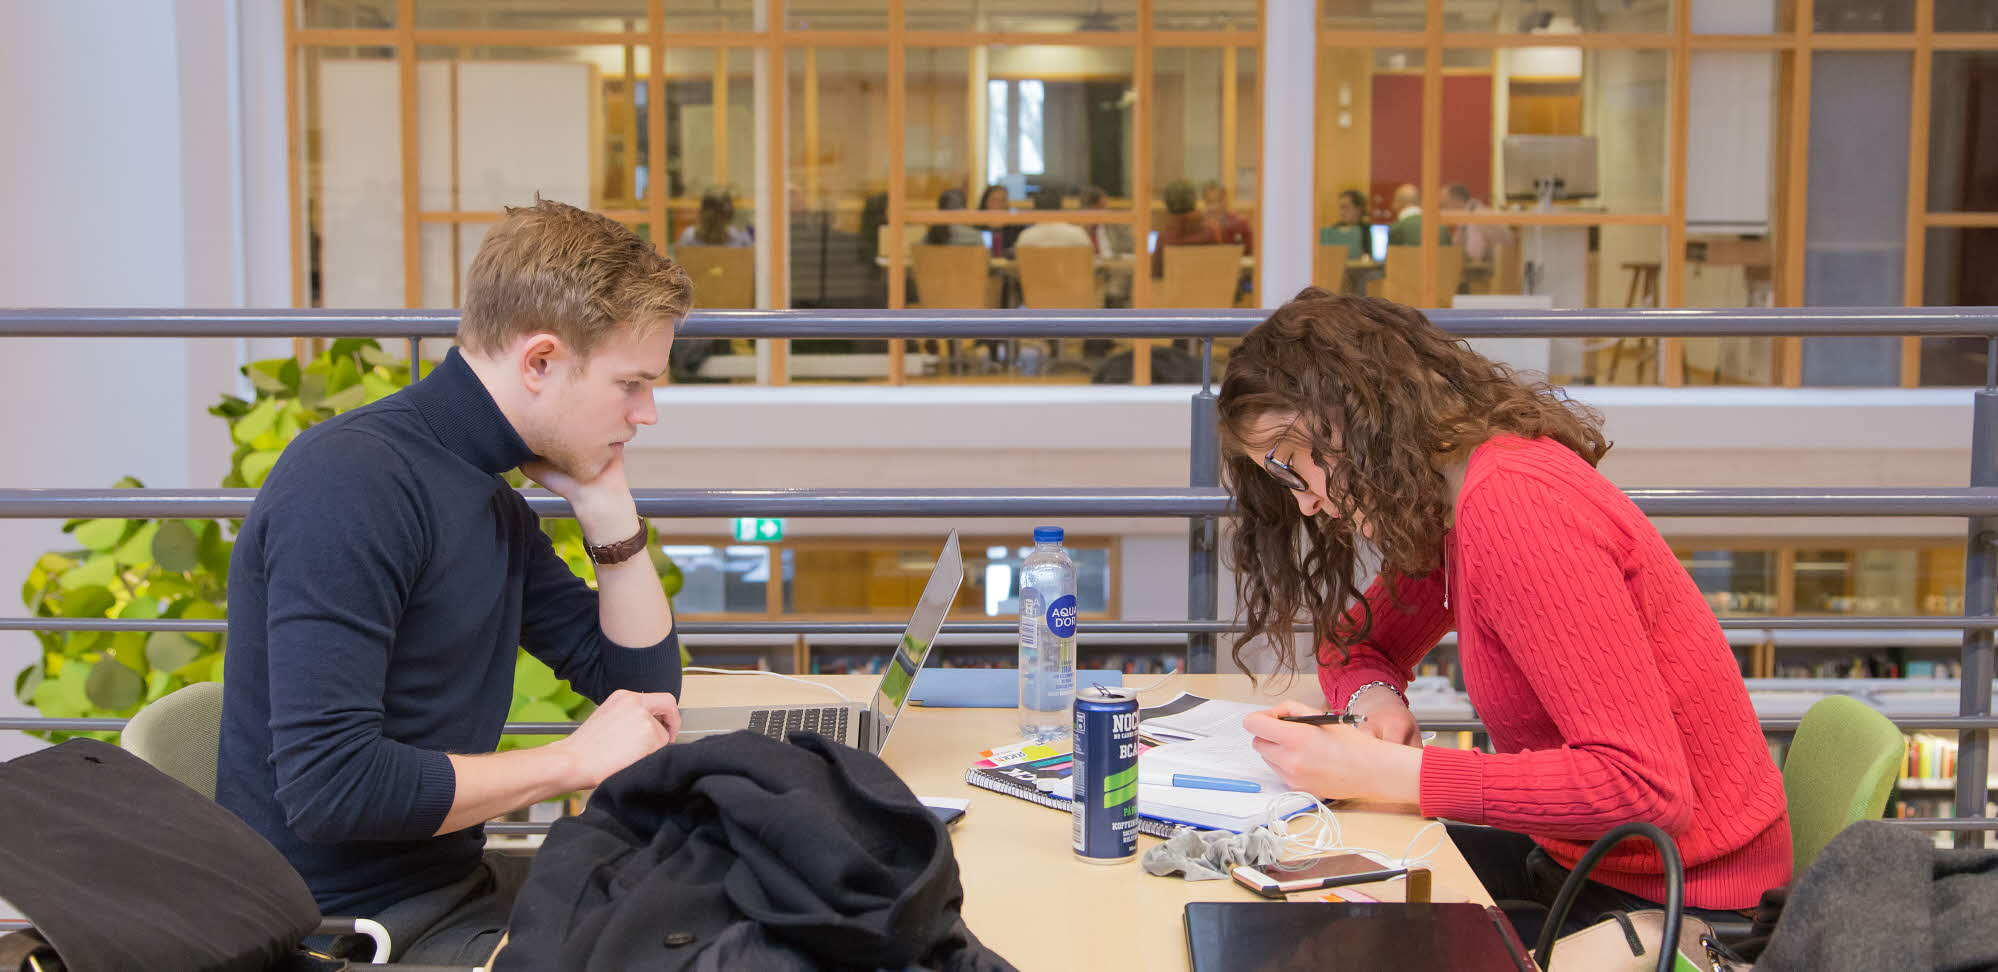 Students study at the library